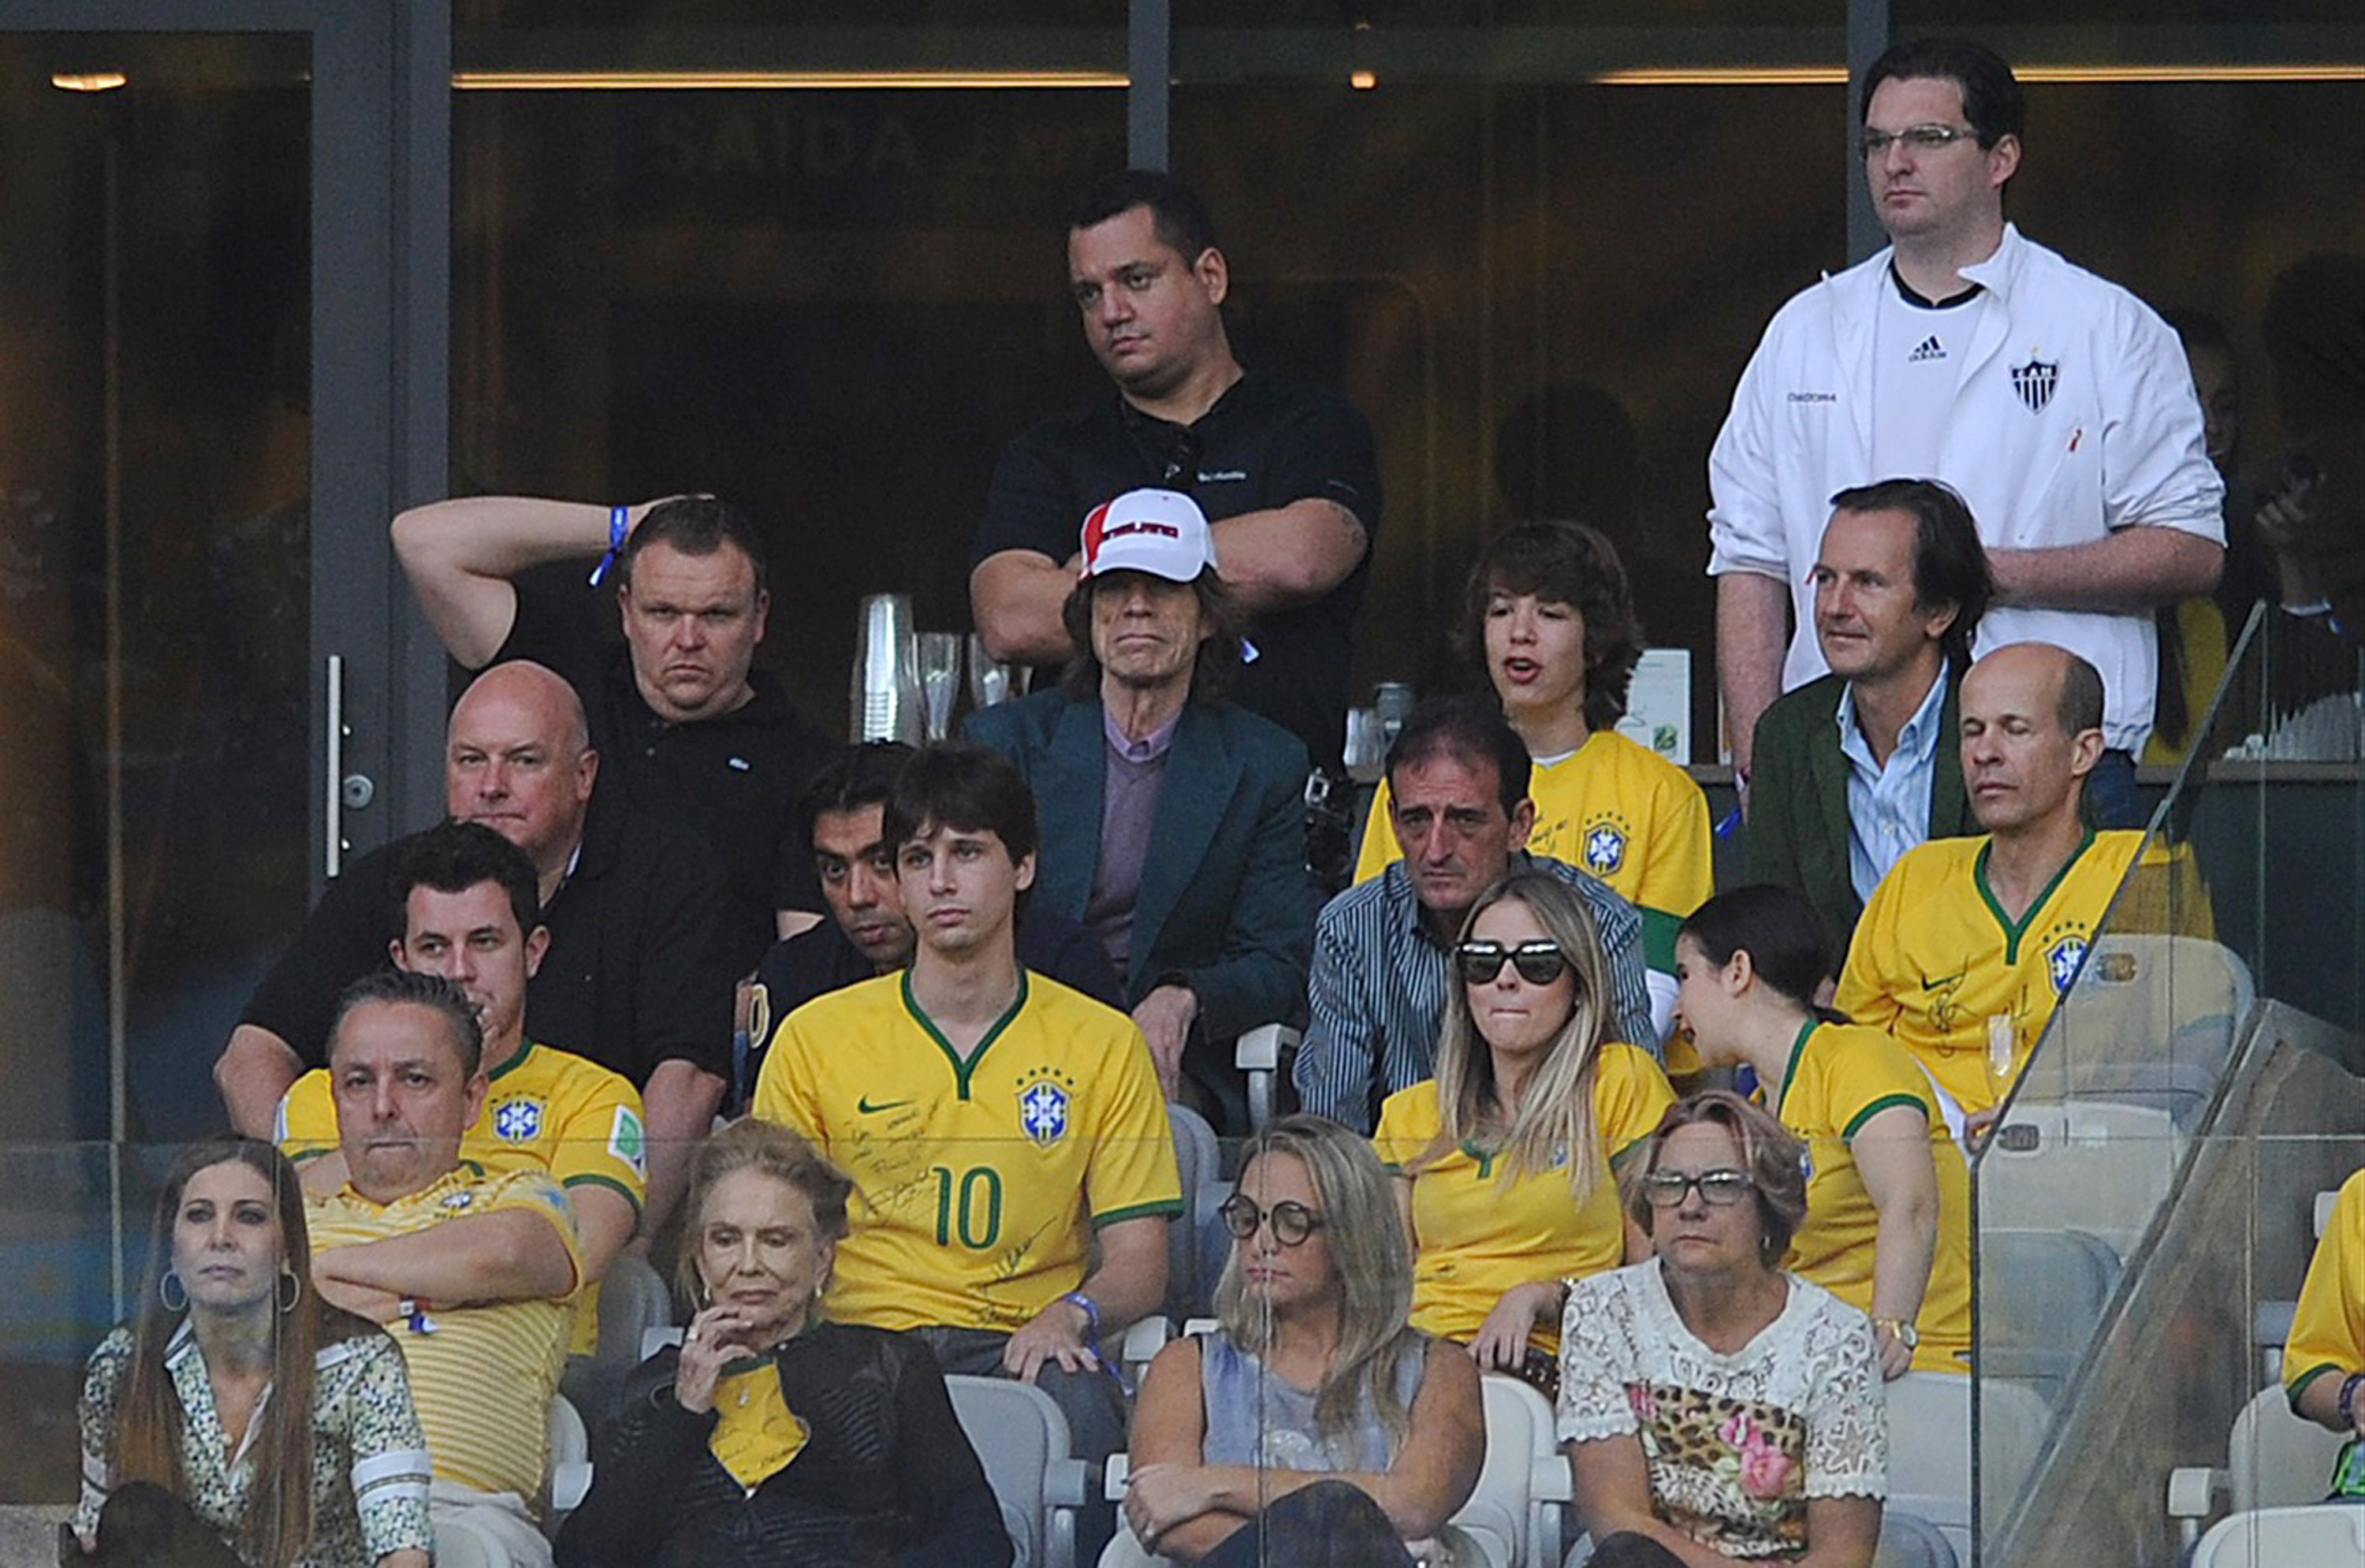 BELO HORIZONTE, BRAZIL - JULY 08: Mick Jagger looks on during the 2014 FIFA World Cup Brazil Semi Final match between Brazil and Germany at Estadio Mineirao on July 08, 2014 in Belo Horizonte, Brazil.  (Photo by Chris Brunskill Ltd/Getty Images)